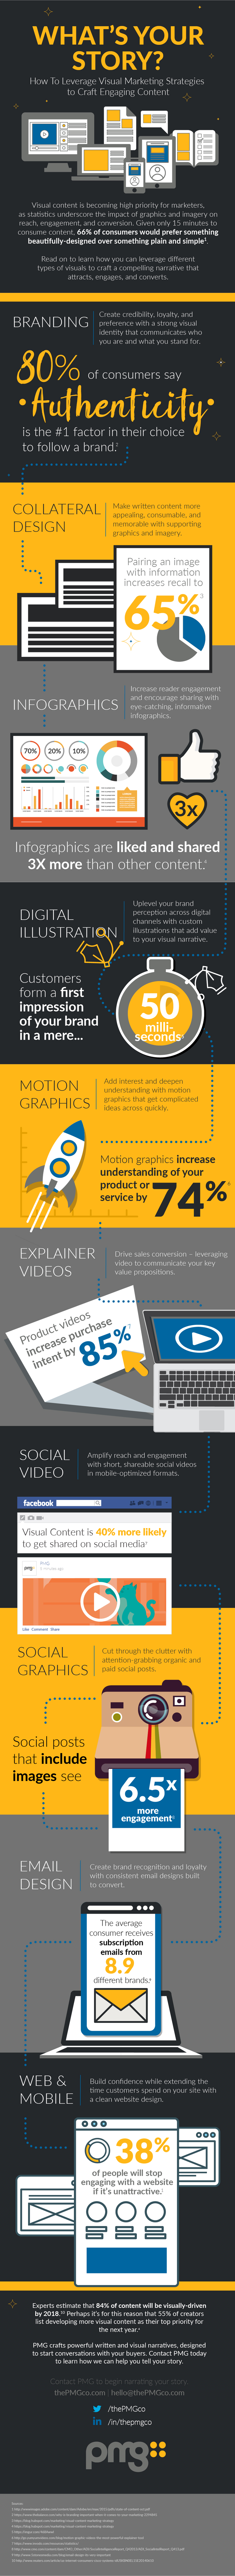 How To Leverage Visual Marketing Strategies to Craft Engaging Content [INFOGRAPHIC]